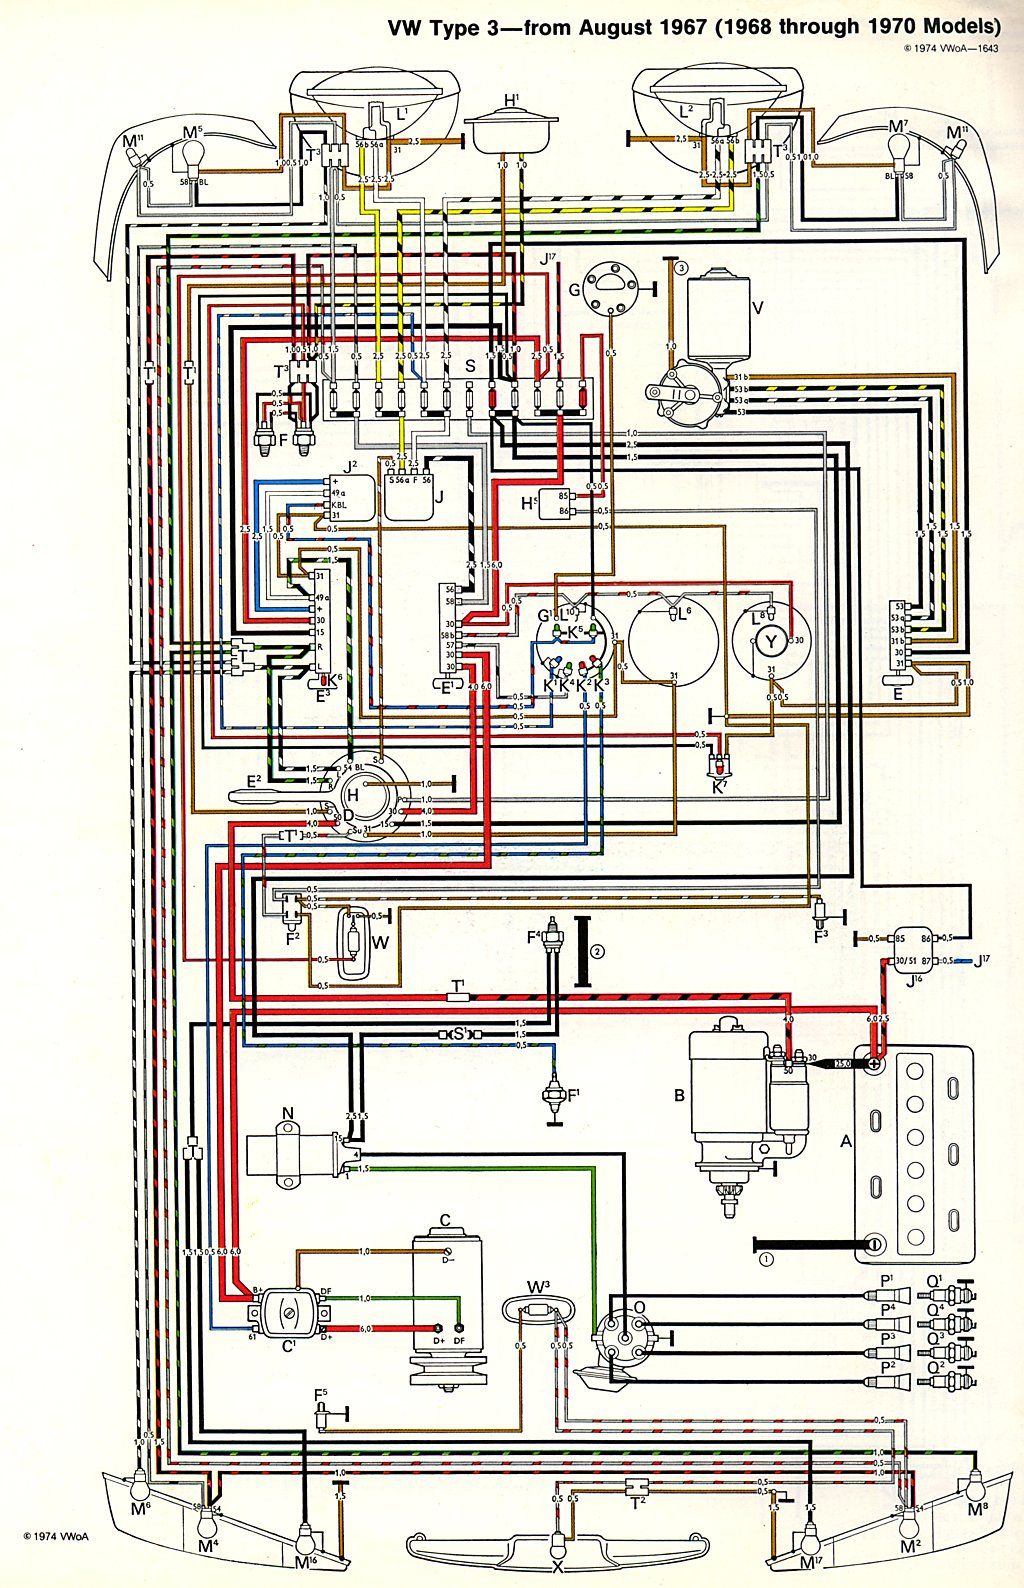 type3_6870 vw thing wiring diagram 1974 beetle heater diagram \u2022 wiring 68 VW Wiring Diagram at mifinder.co